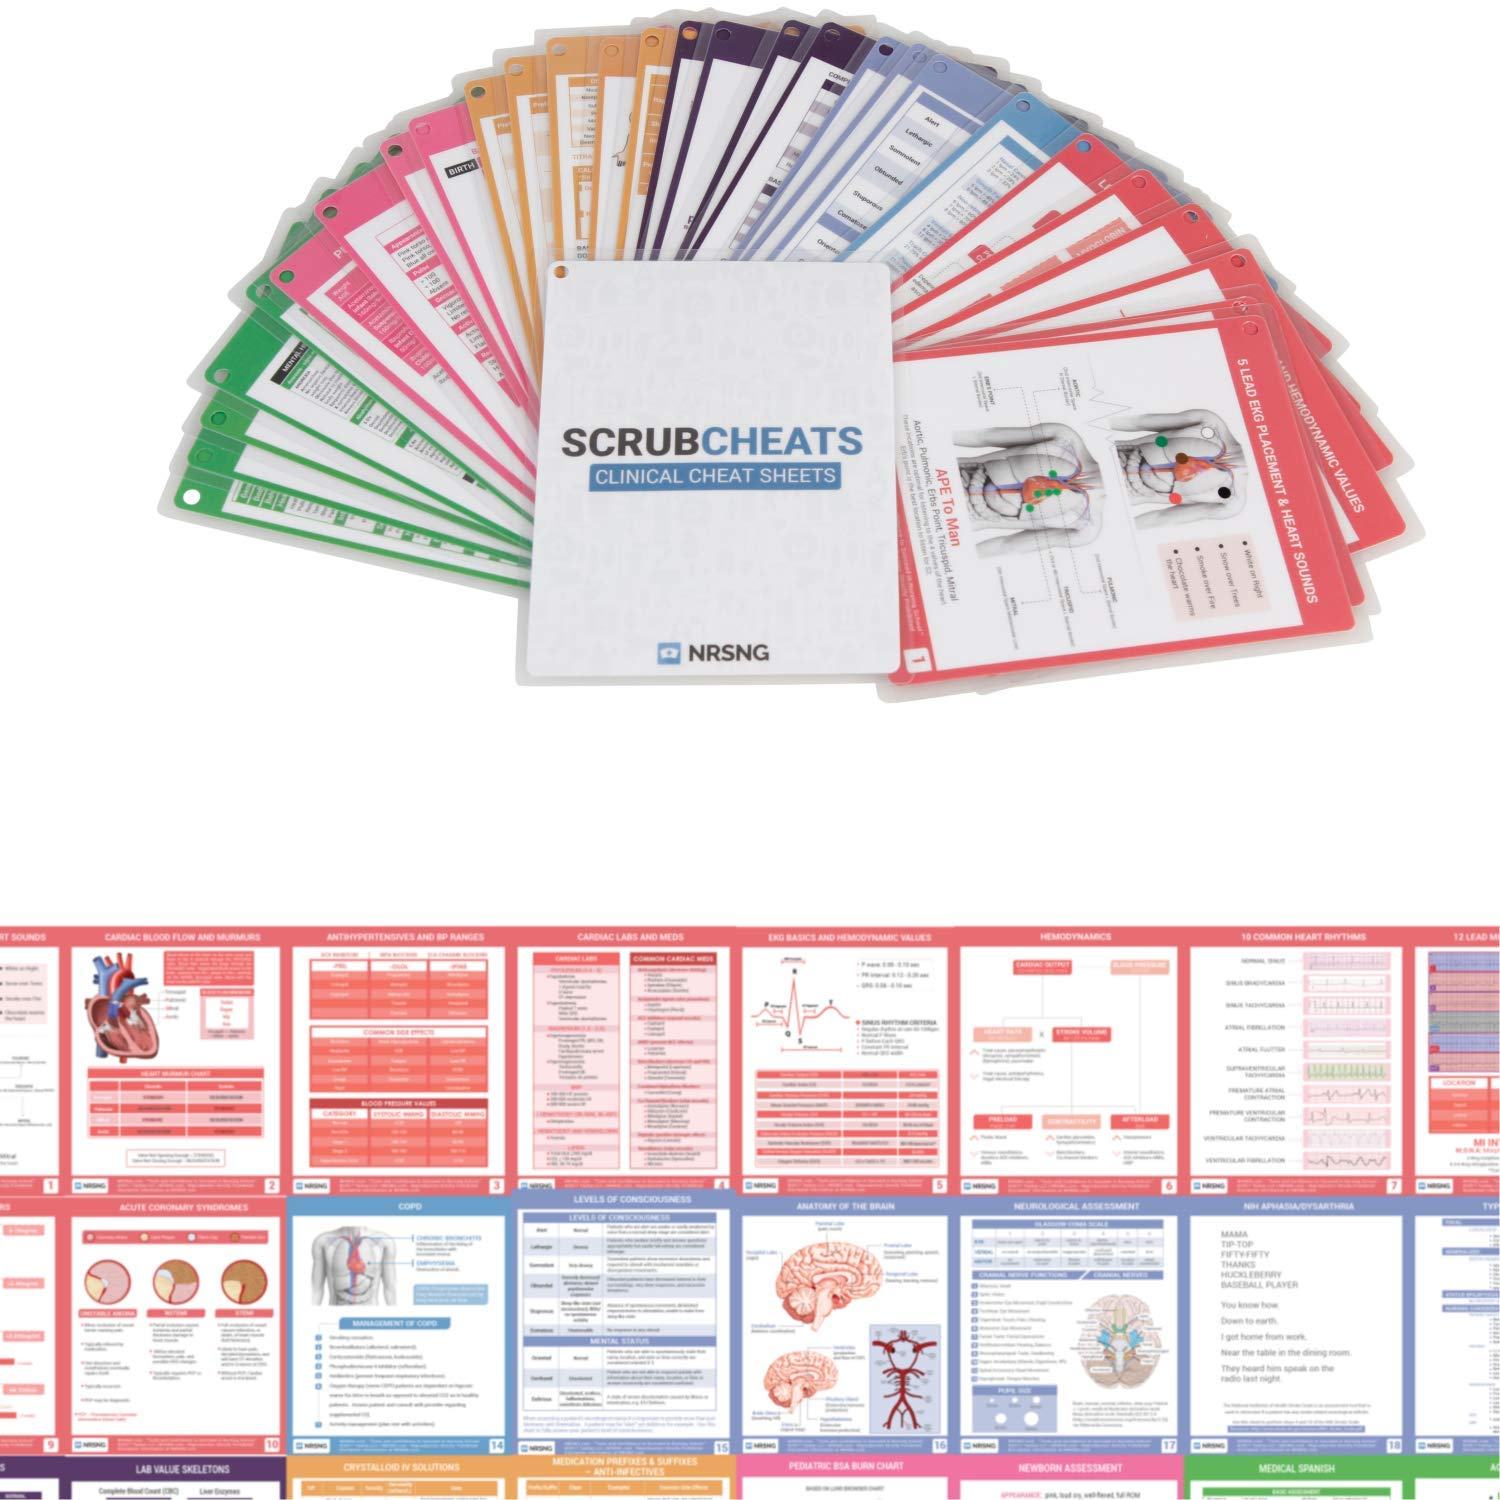 Scrubcheats 2018 56 Heavy Duty Laminated Nursing Reference Cards by NRSNG (4X6 Fits in Scrub Pocket) (MedSurg, Critical Care, Pharmacology, OB/Peds, Respiratory, Cardiac) WATERPROOF, SPLASH PROOF